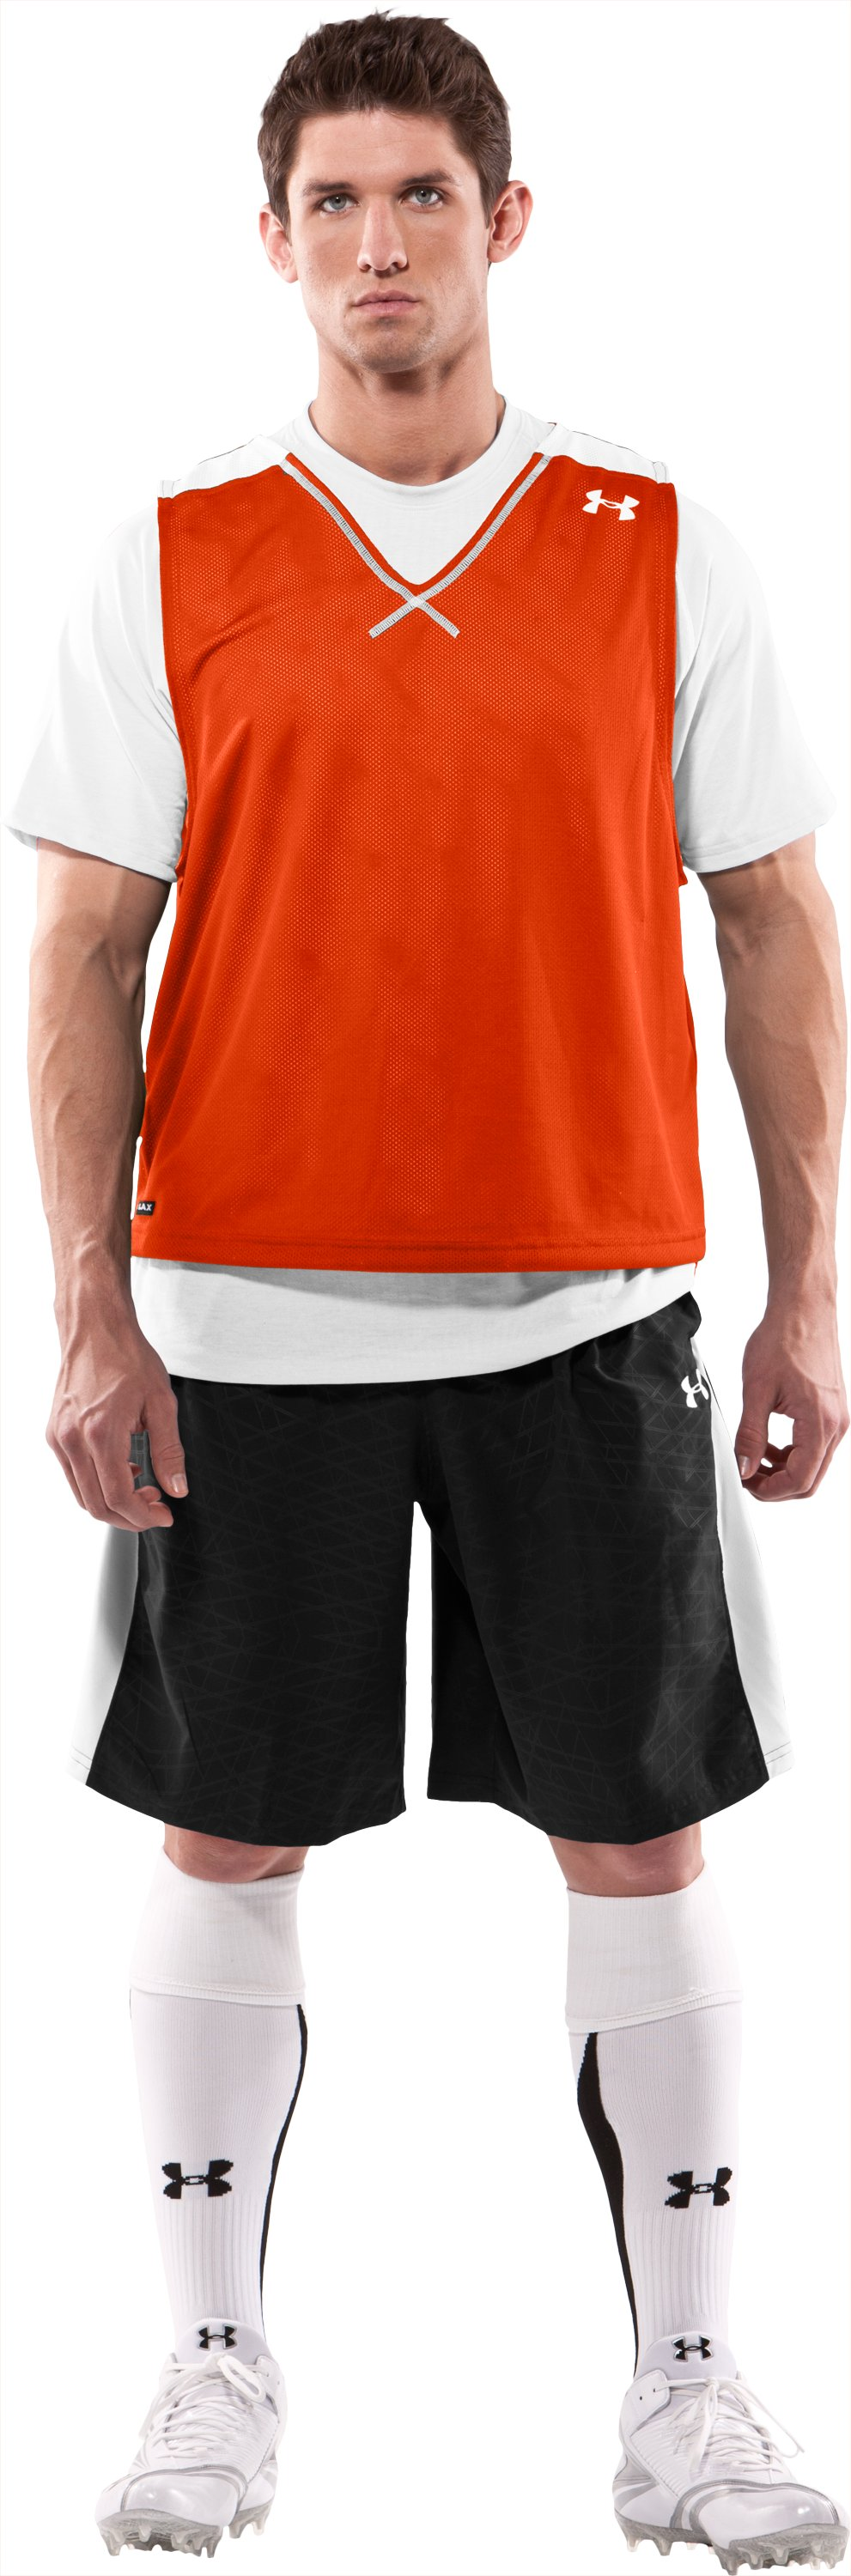 Men's Practice Jersey, Dark Orange, Front